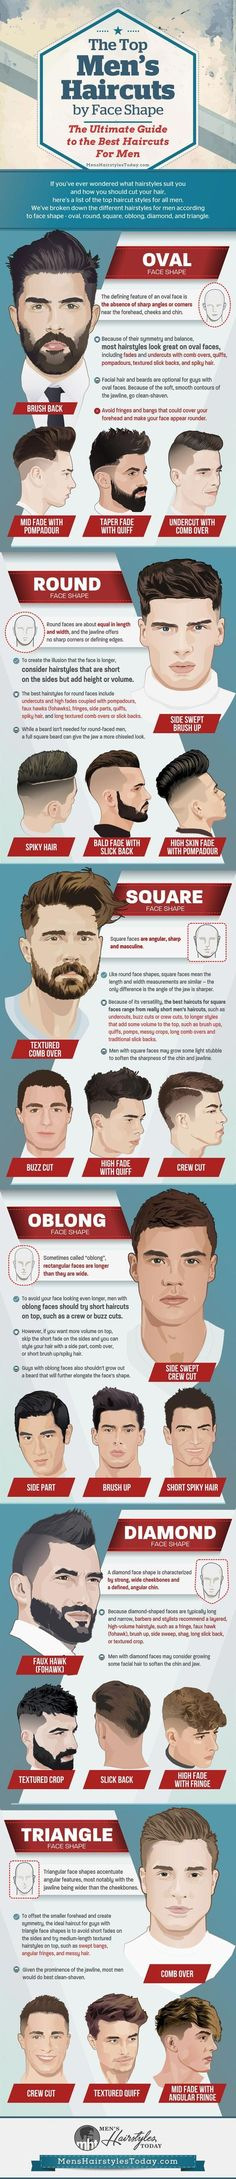 The Best Hairstyles For Men By Face Shape The Ultimate Guide to Cool Mens Haircuts Fades Undercuts Pompadours Side Parts Comb Overs Quiffs and Spiky Hair Cool Mens Haircuts, Trendy Haircuts, Cool Haircuts, Hairstyles Haircuts, Cool Hairstyles, Haircut Men, Wedding Hairstyles, Medium Hairstyles, Haircut Short